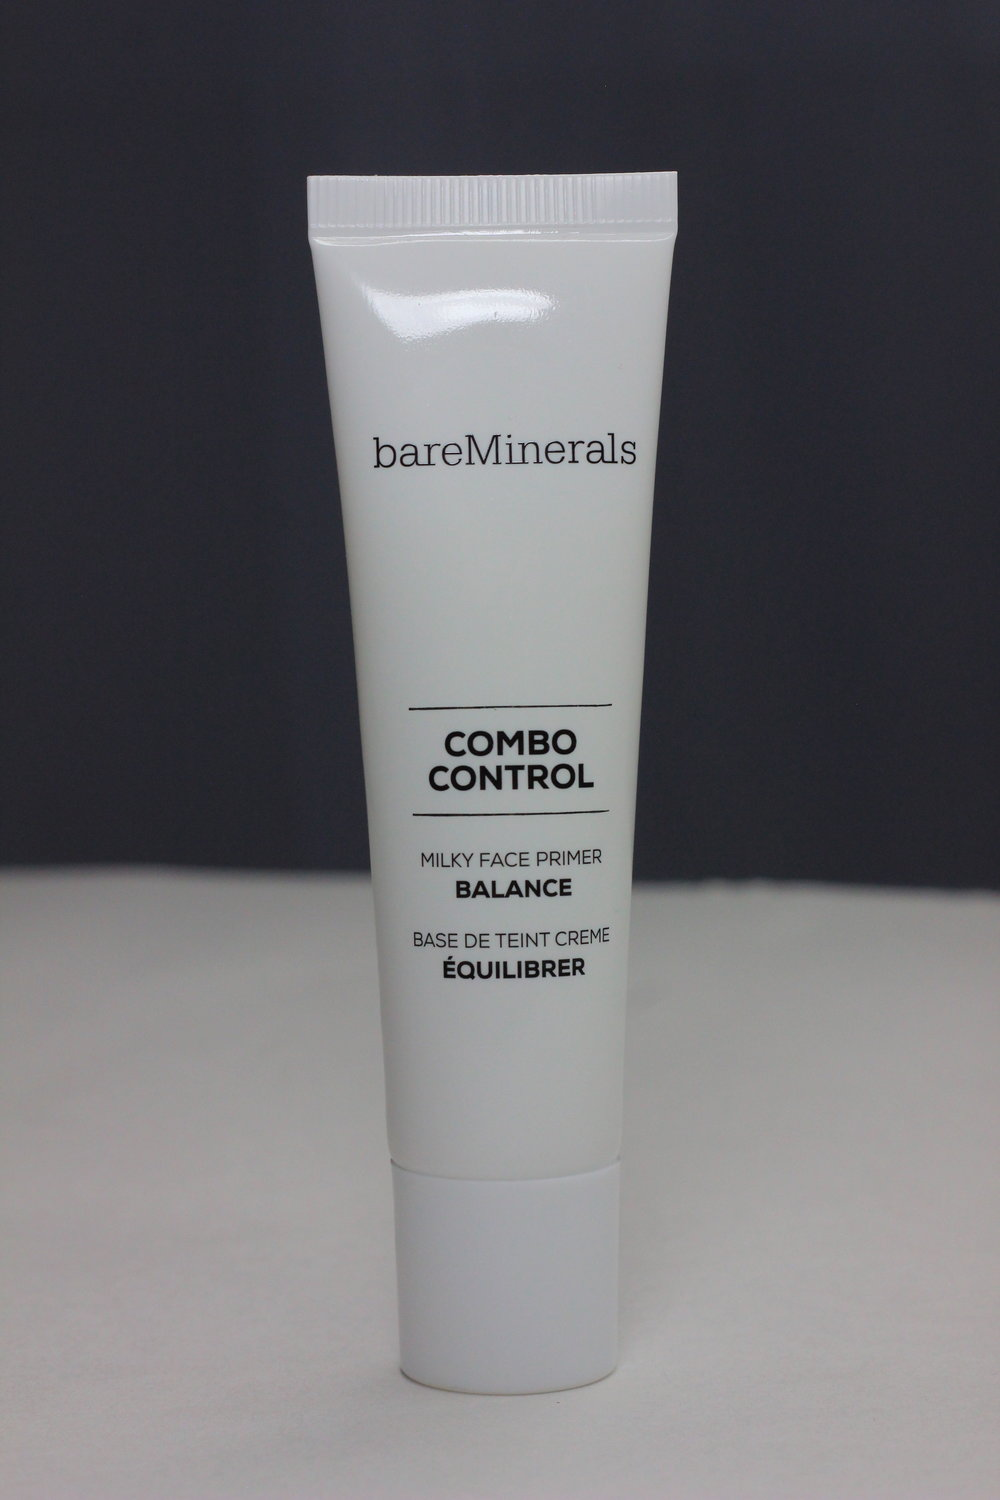 bareMinerals Combo Control Primer review.JPG